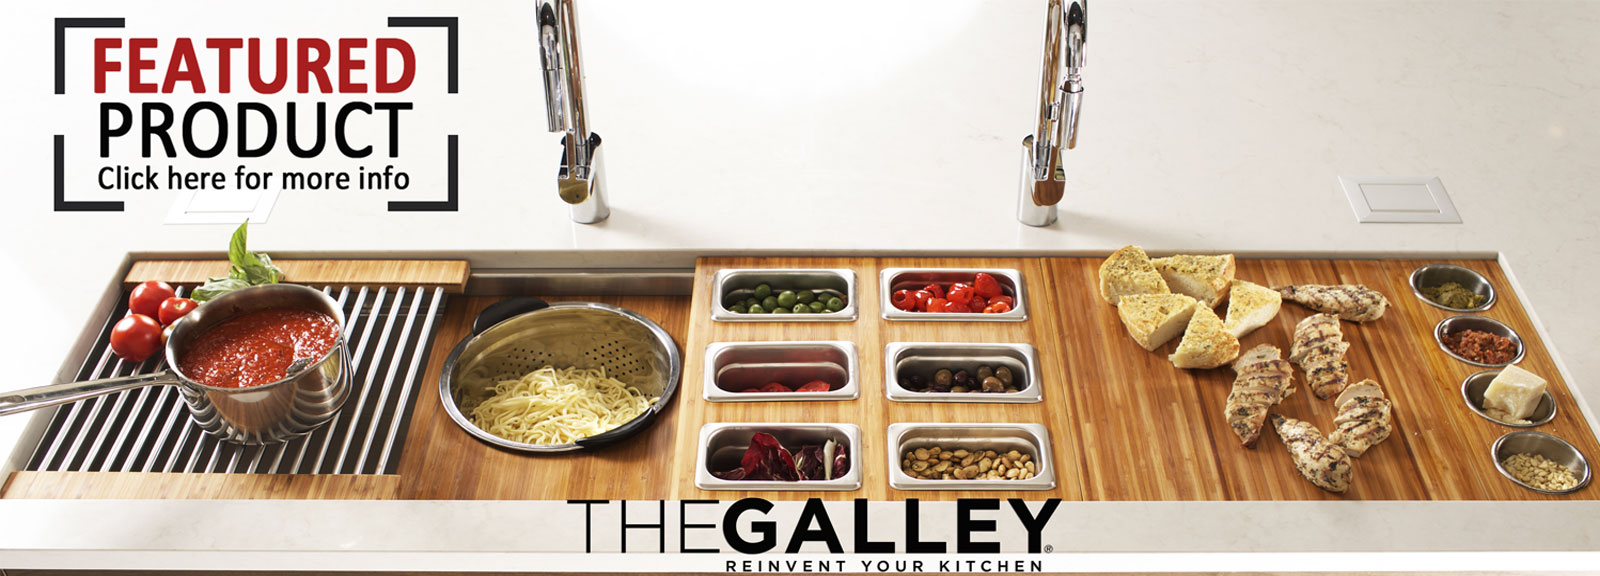 Feature Product Galley